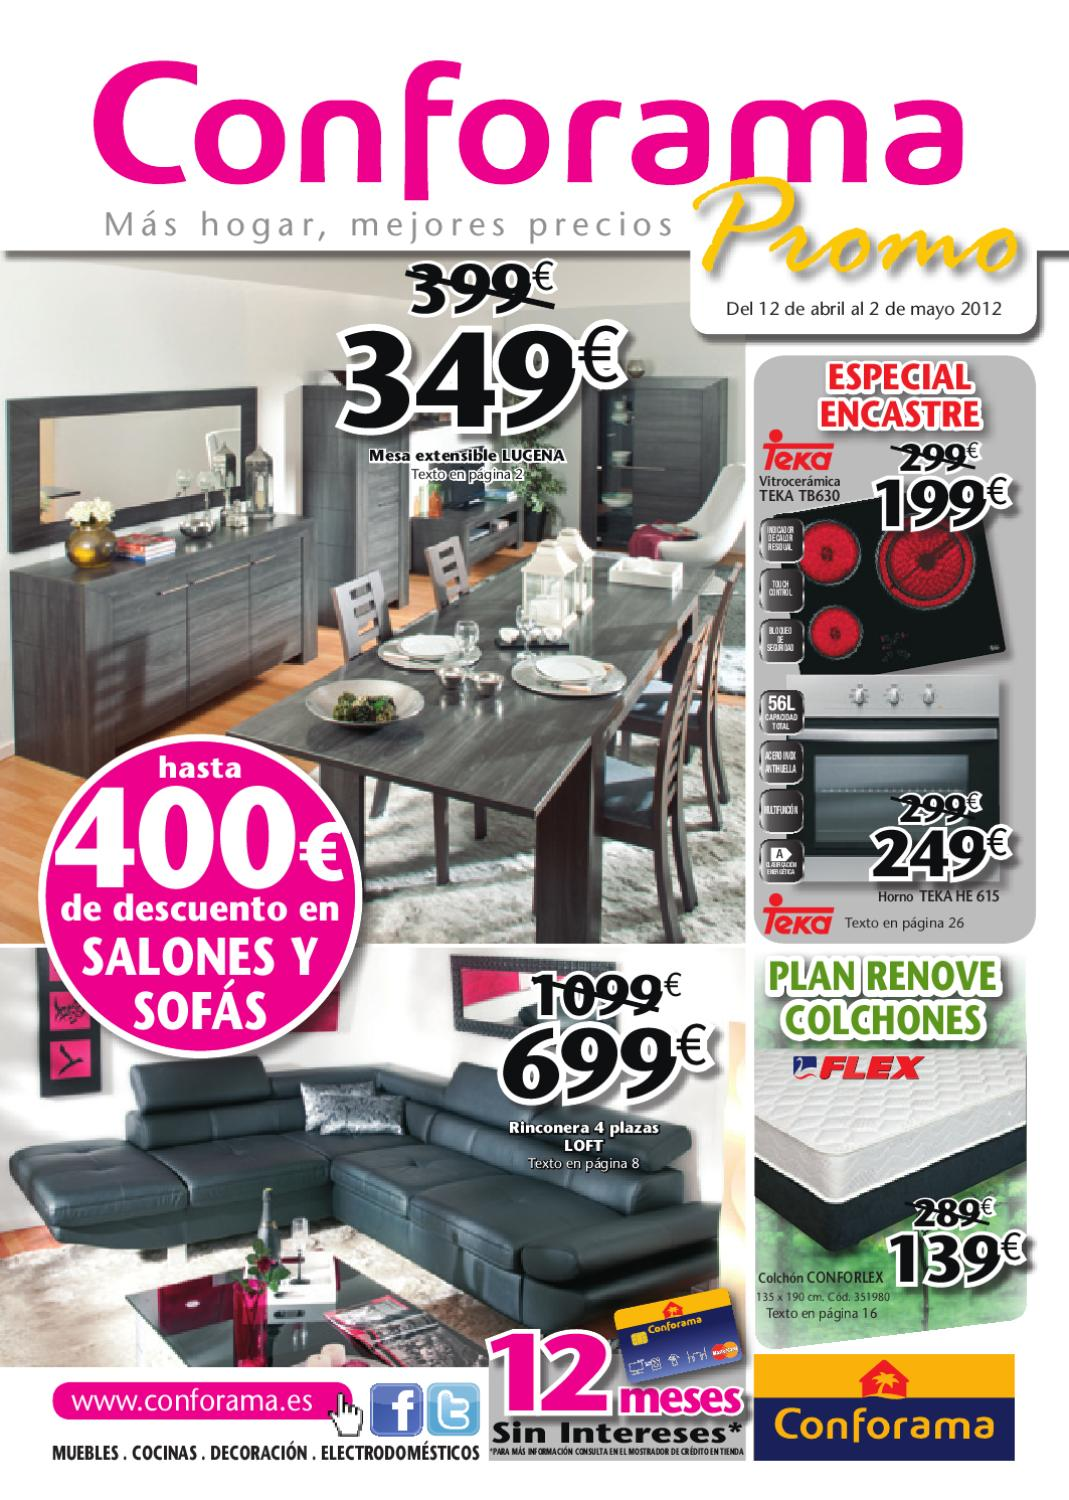 Conforama catalogo folleto hogar 1 mayo 2012 by for Page 3 salon pathankot